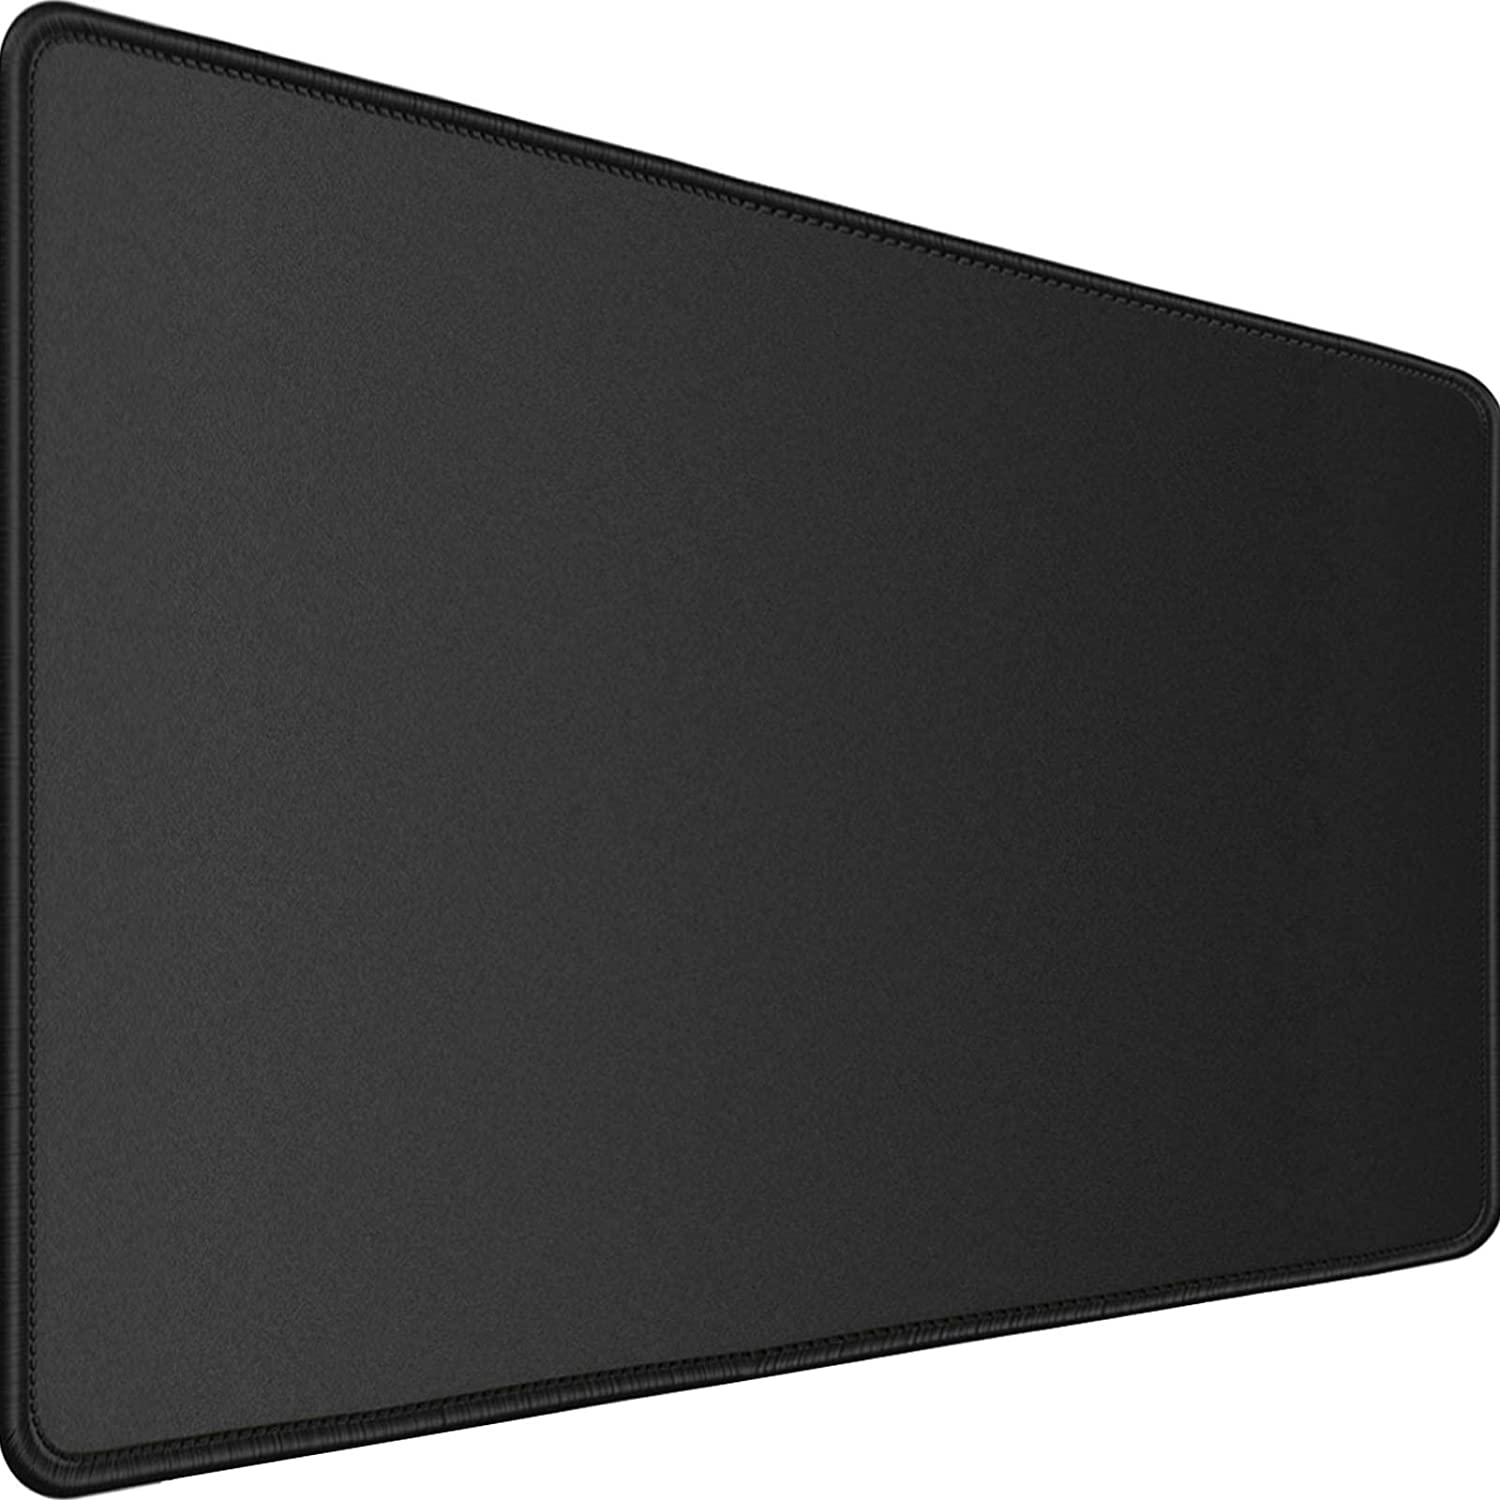 """Larger Extended Gaming Mouse Pad with Stitched Edges, 31.5""""x15.7""""x0.12"""" DurableXXL Computer LaptopMouse Pad,Desk Mat,Non-Slip Base Waterproof Writing Desk Mat for HomeOffice Work& Gaming, Black"""